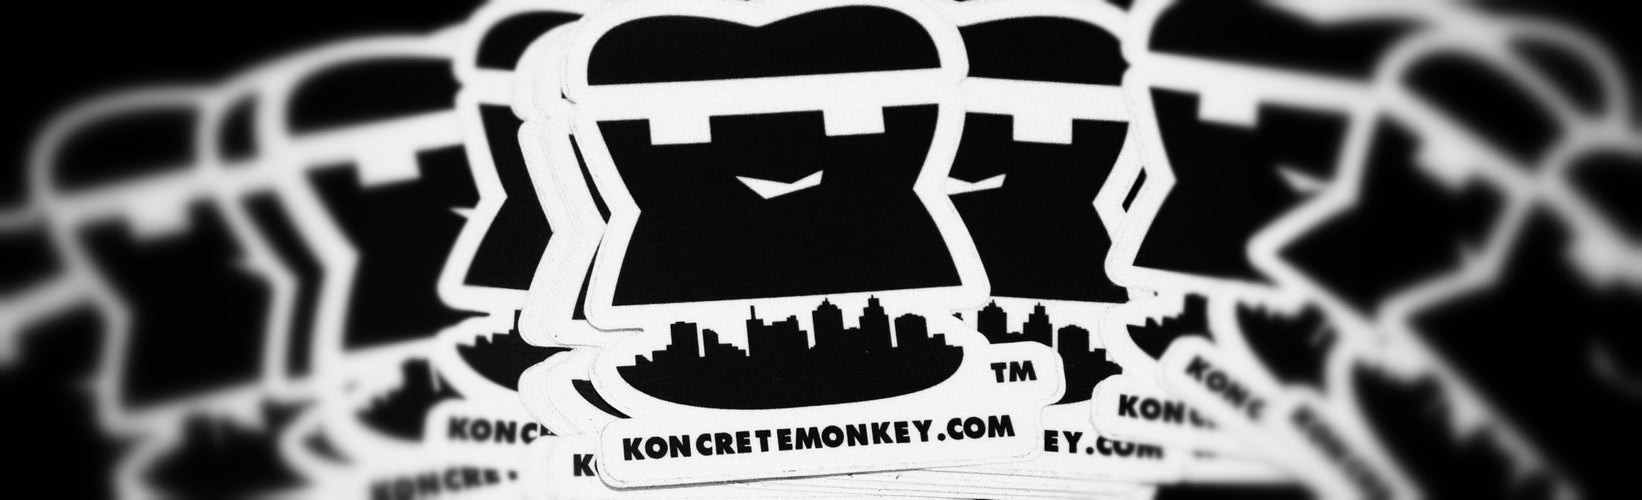 KONCRETE MONKEY